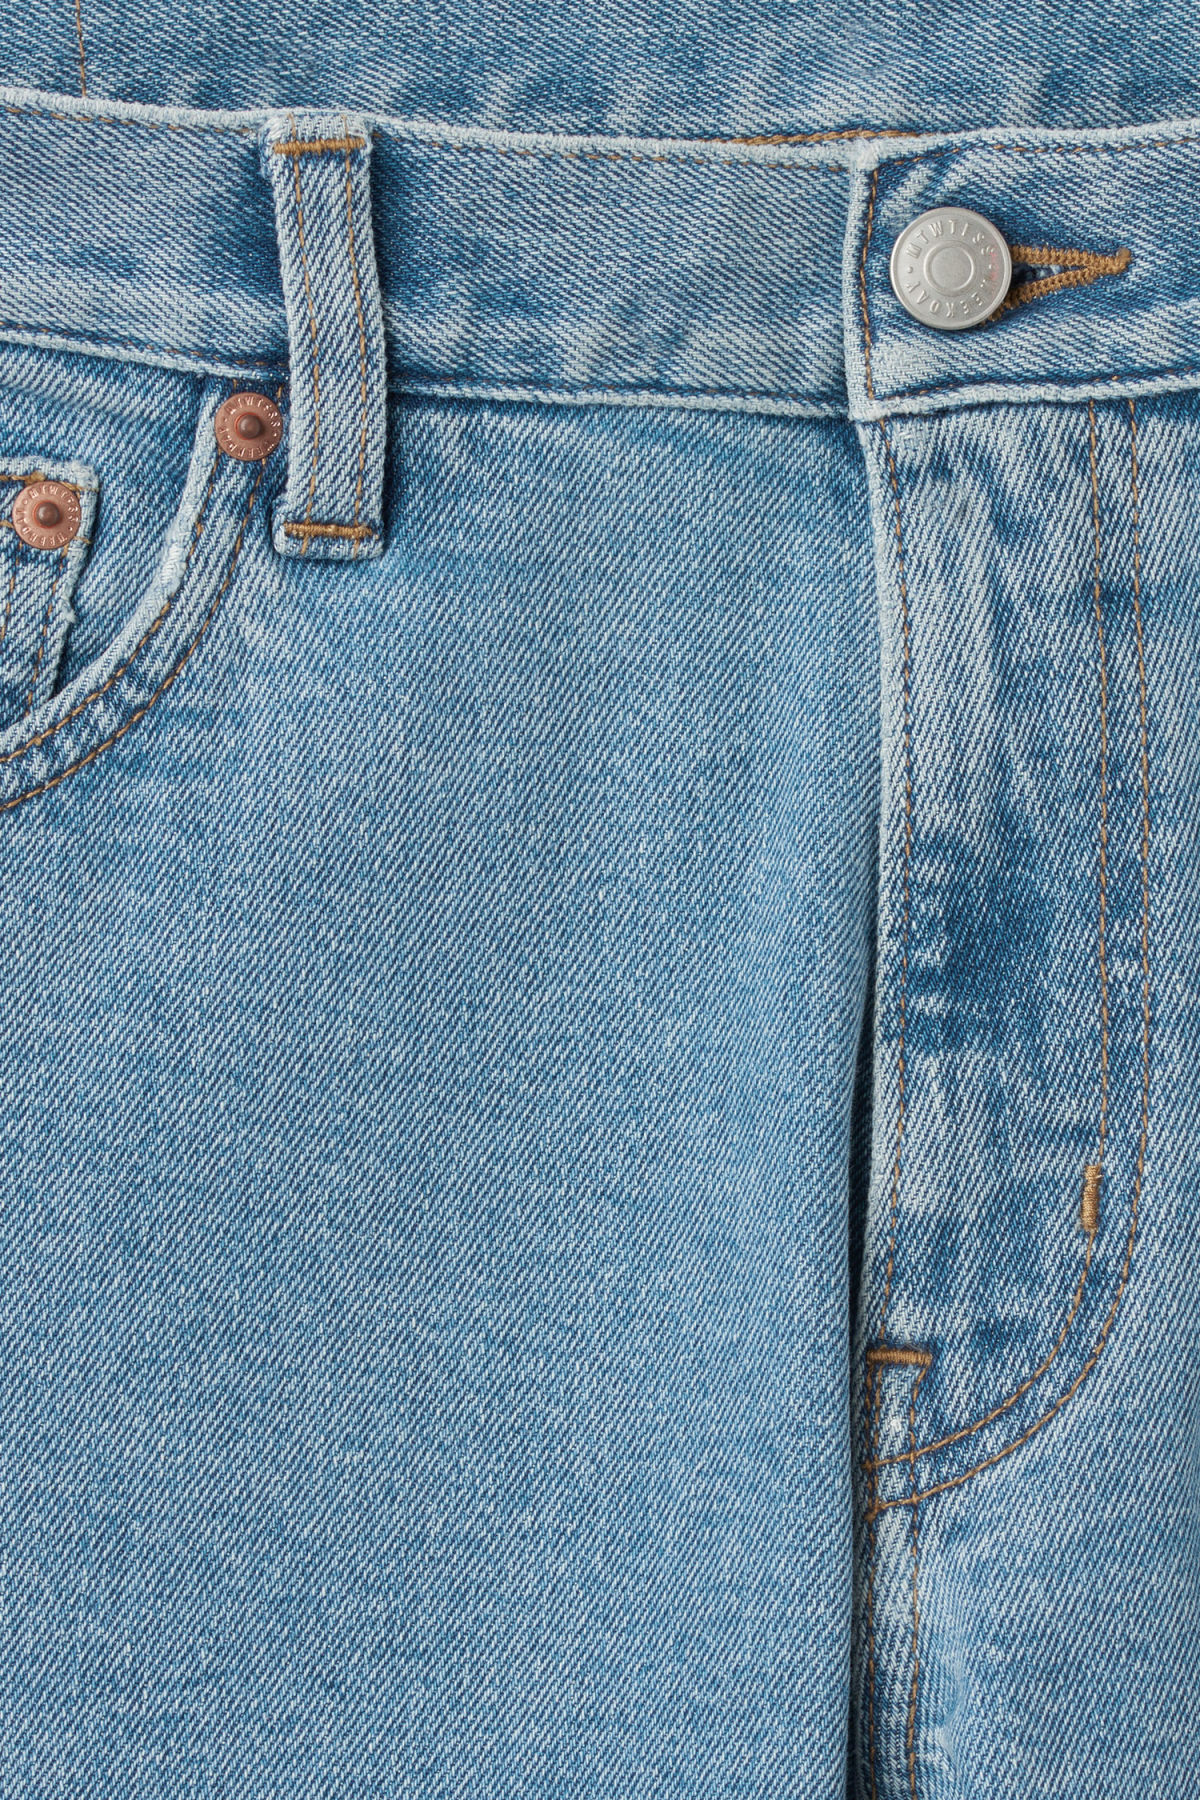 Detailed image of Weekday friday cash jeans in blue